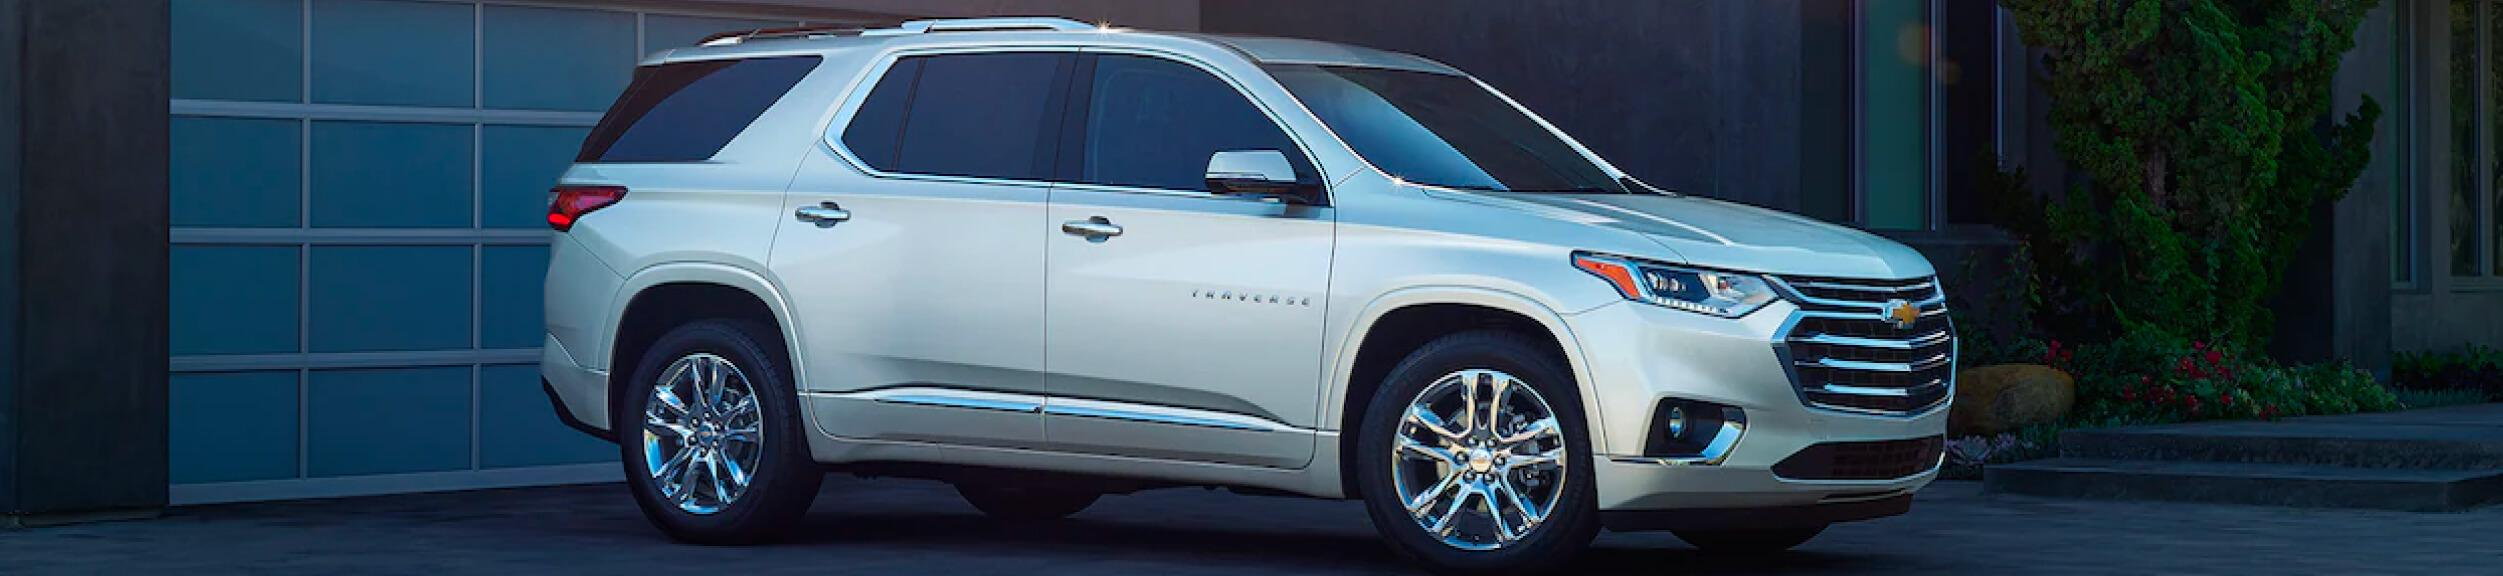 Are You Ready for What's Next? The 2022 Chevrolet Traverse